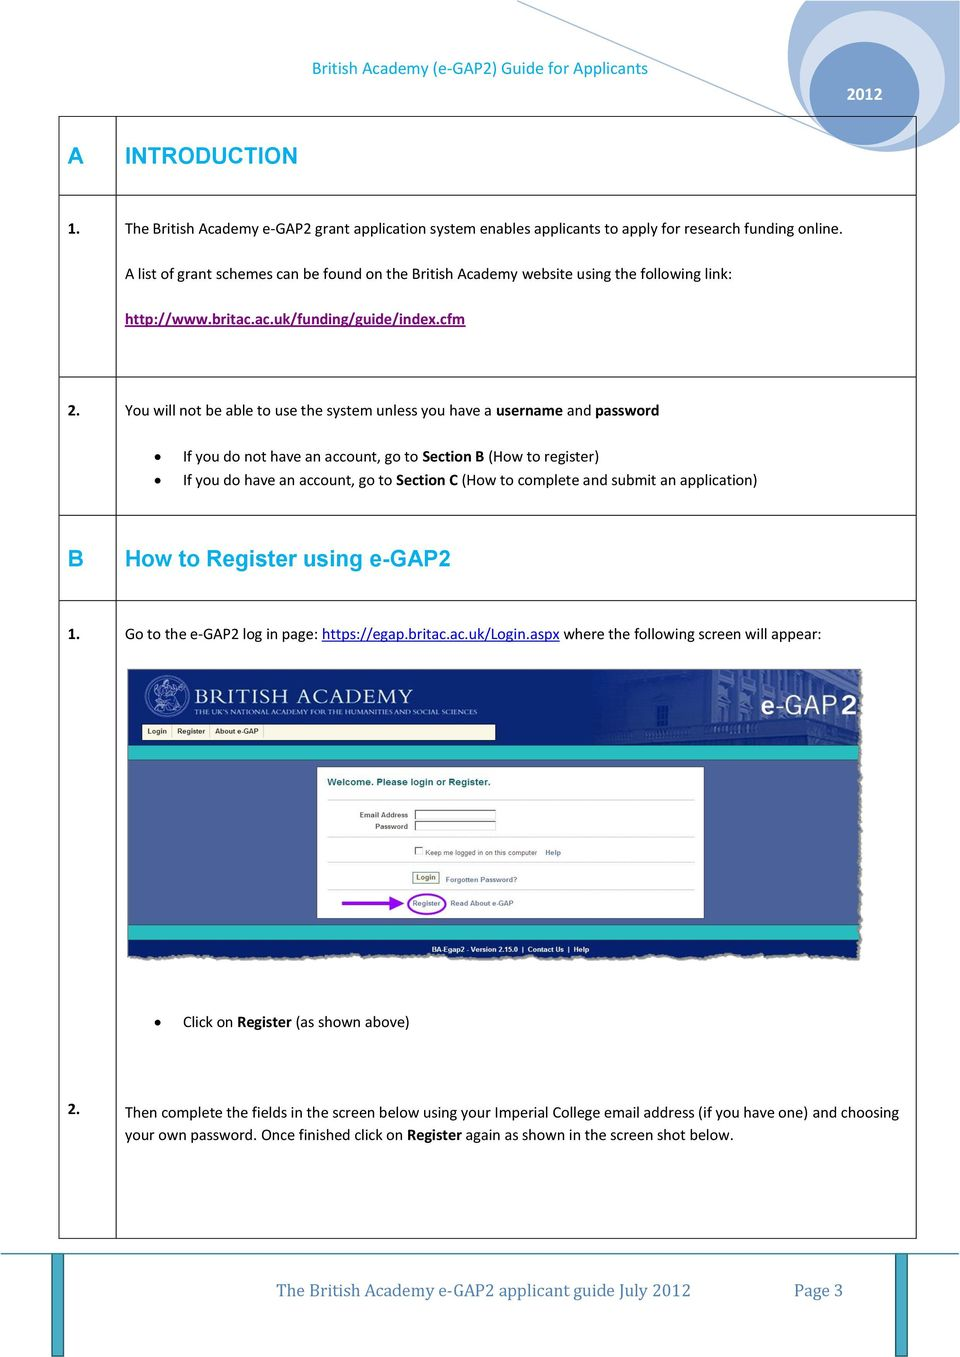 You will not be able to use the system unless you have a username and password If you do not have an account, go to Section B (How to register) If you do have an account, go to Section C (How to